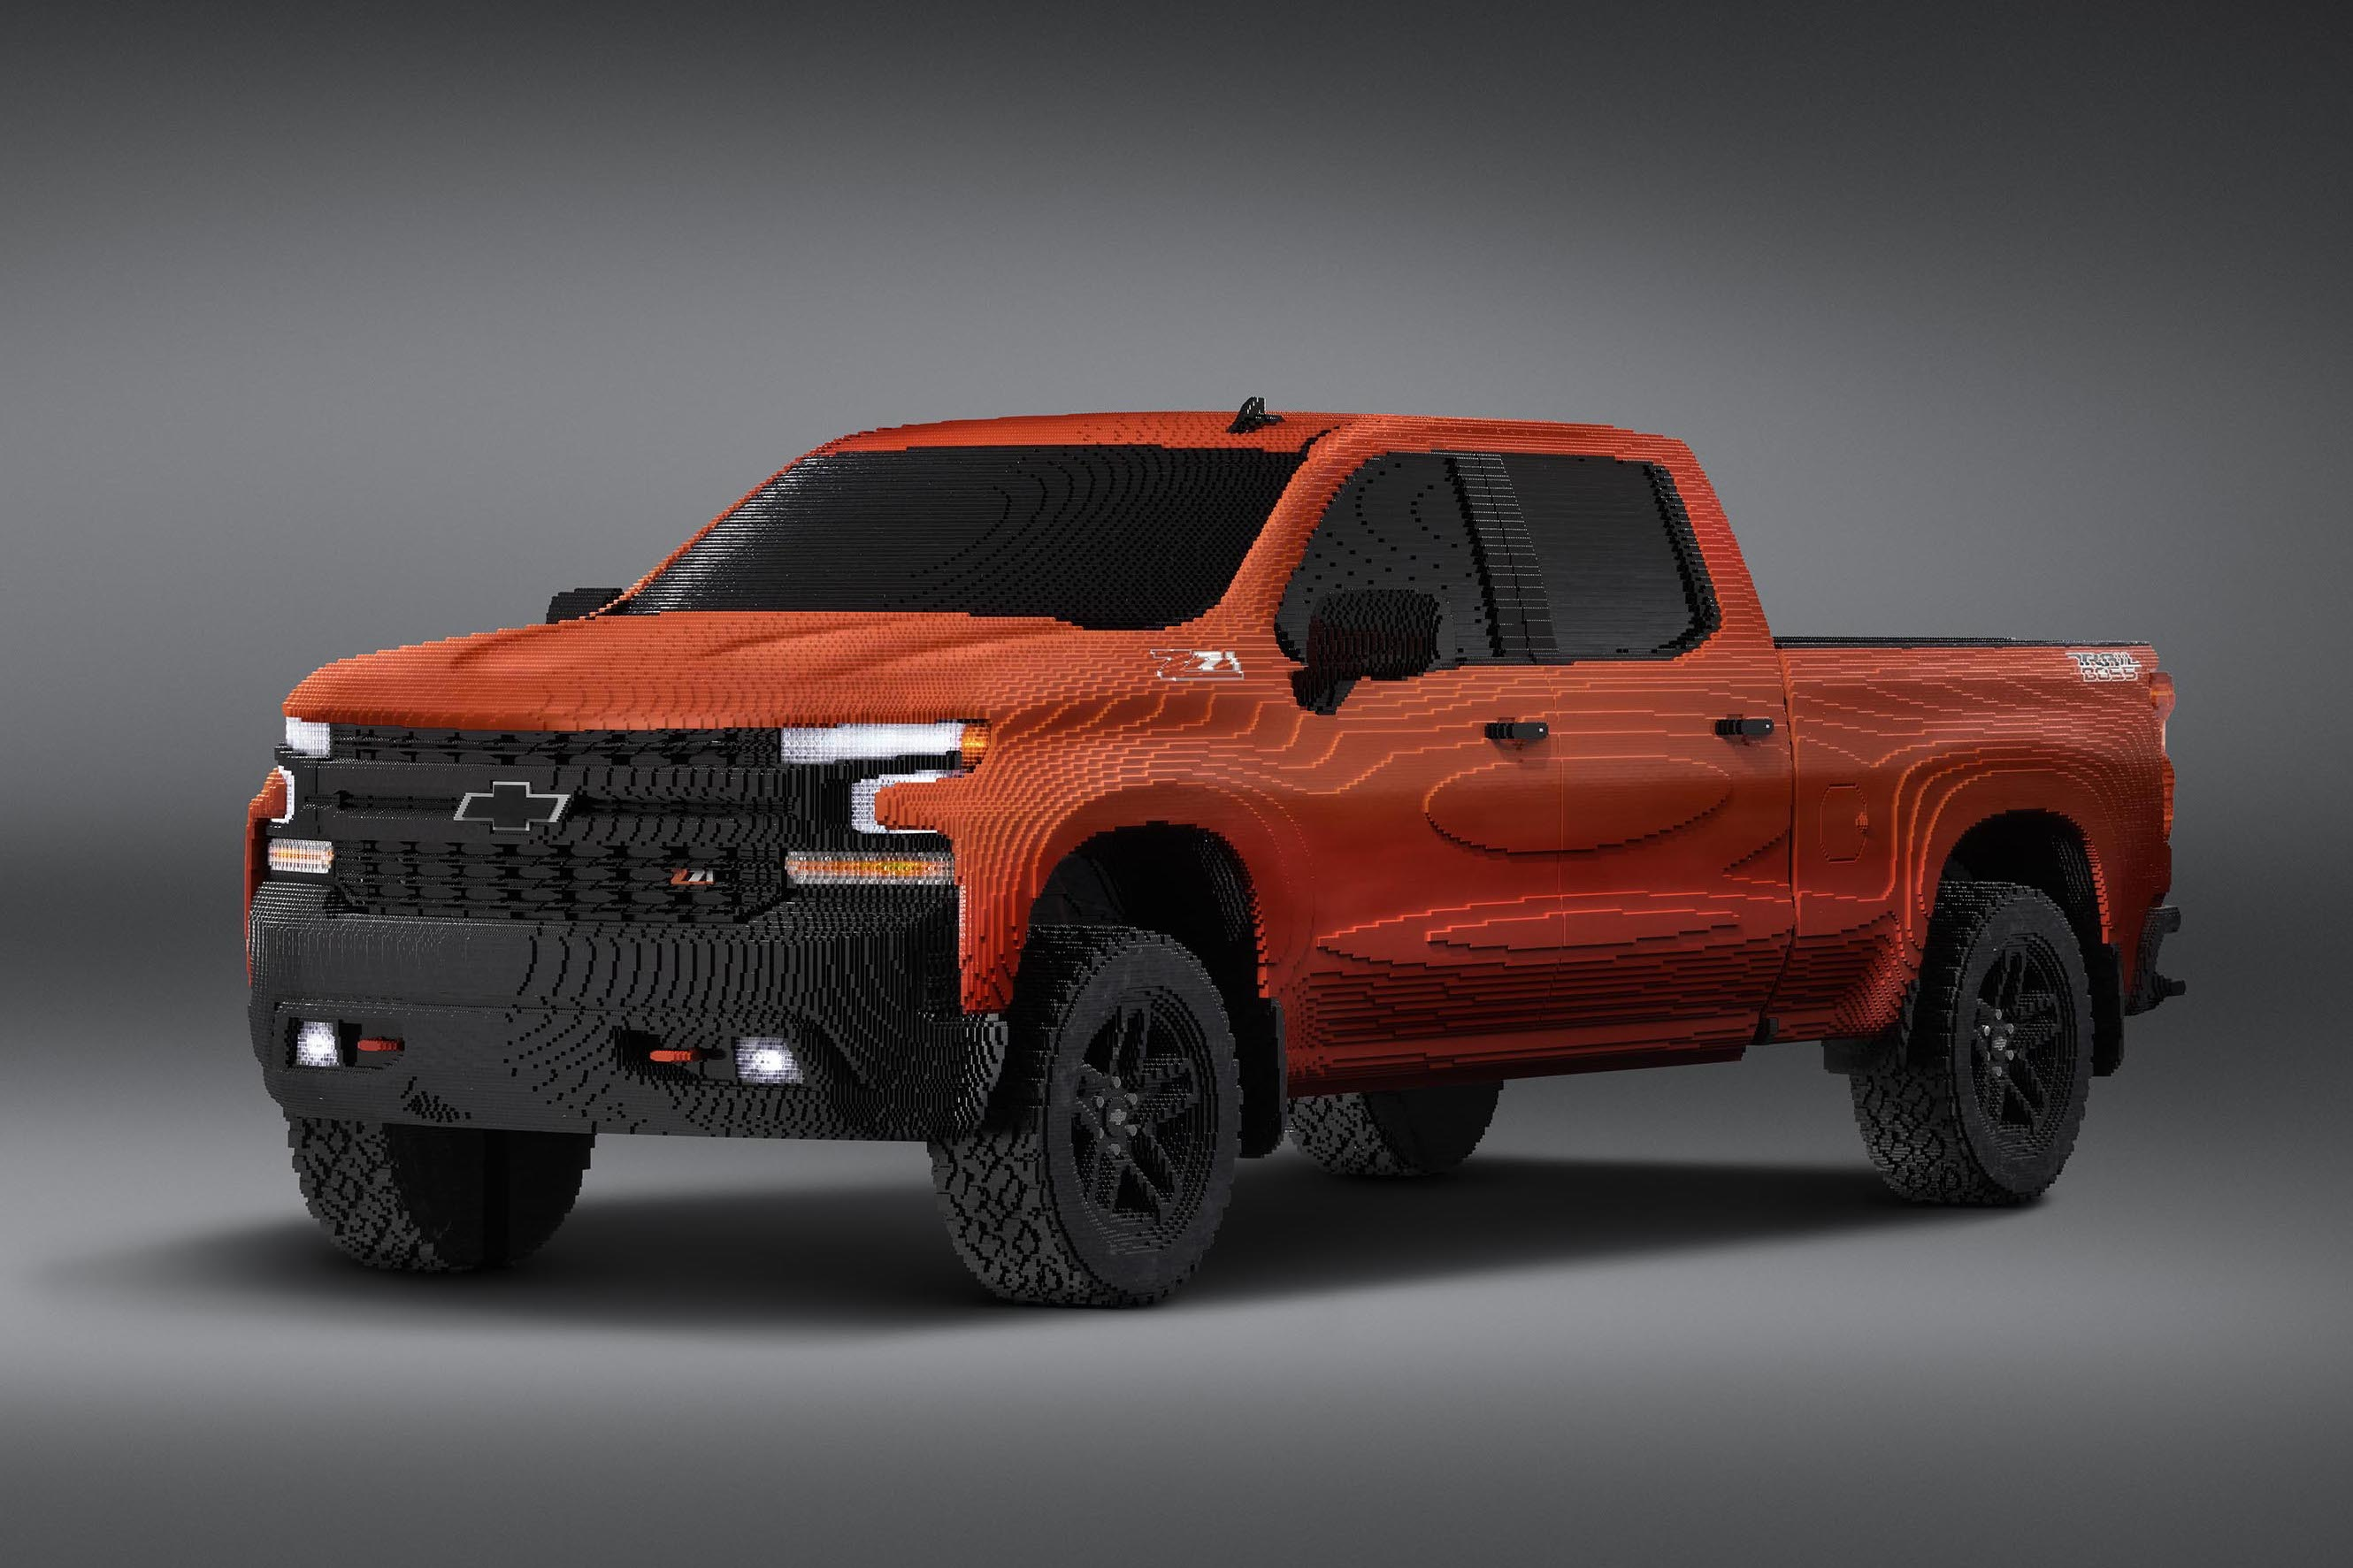 Check Out This Life-Size Lego Chevy Silverado Made from 334,000 Bricks | Automobile Magazine